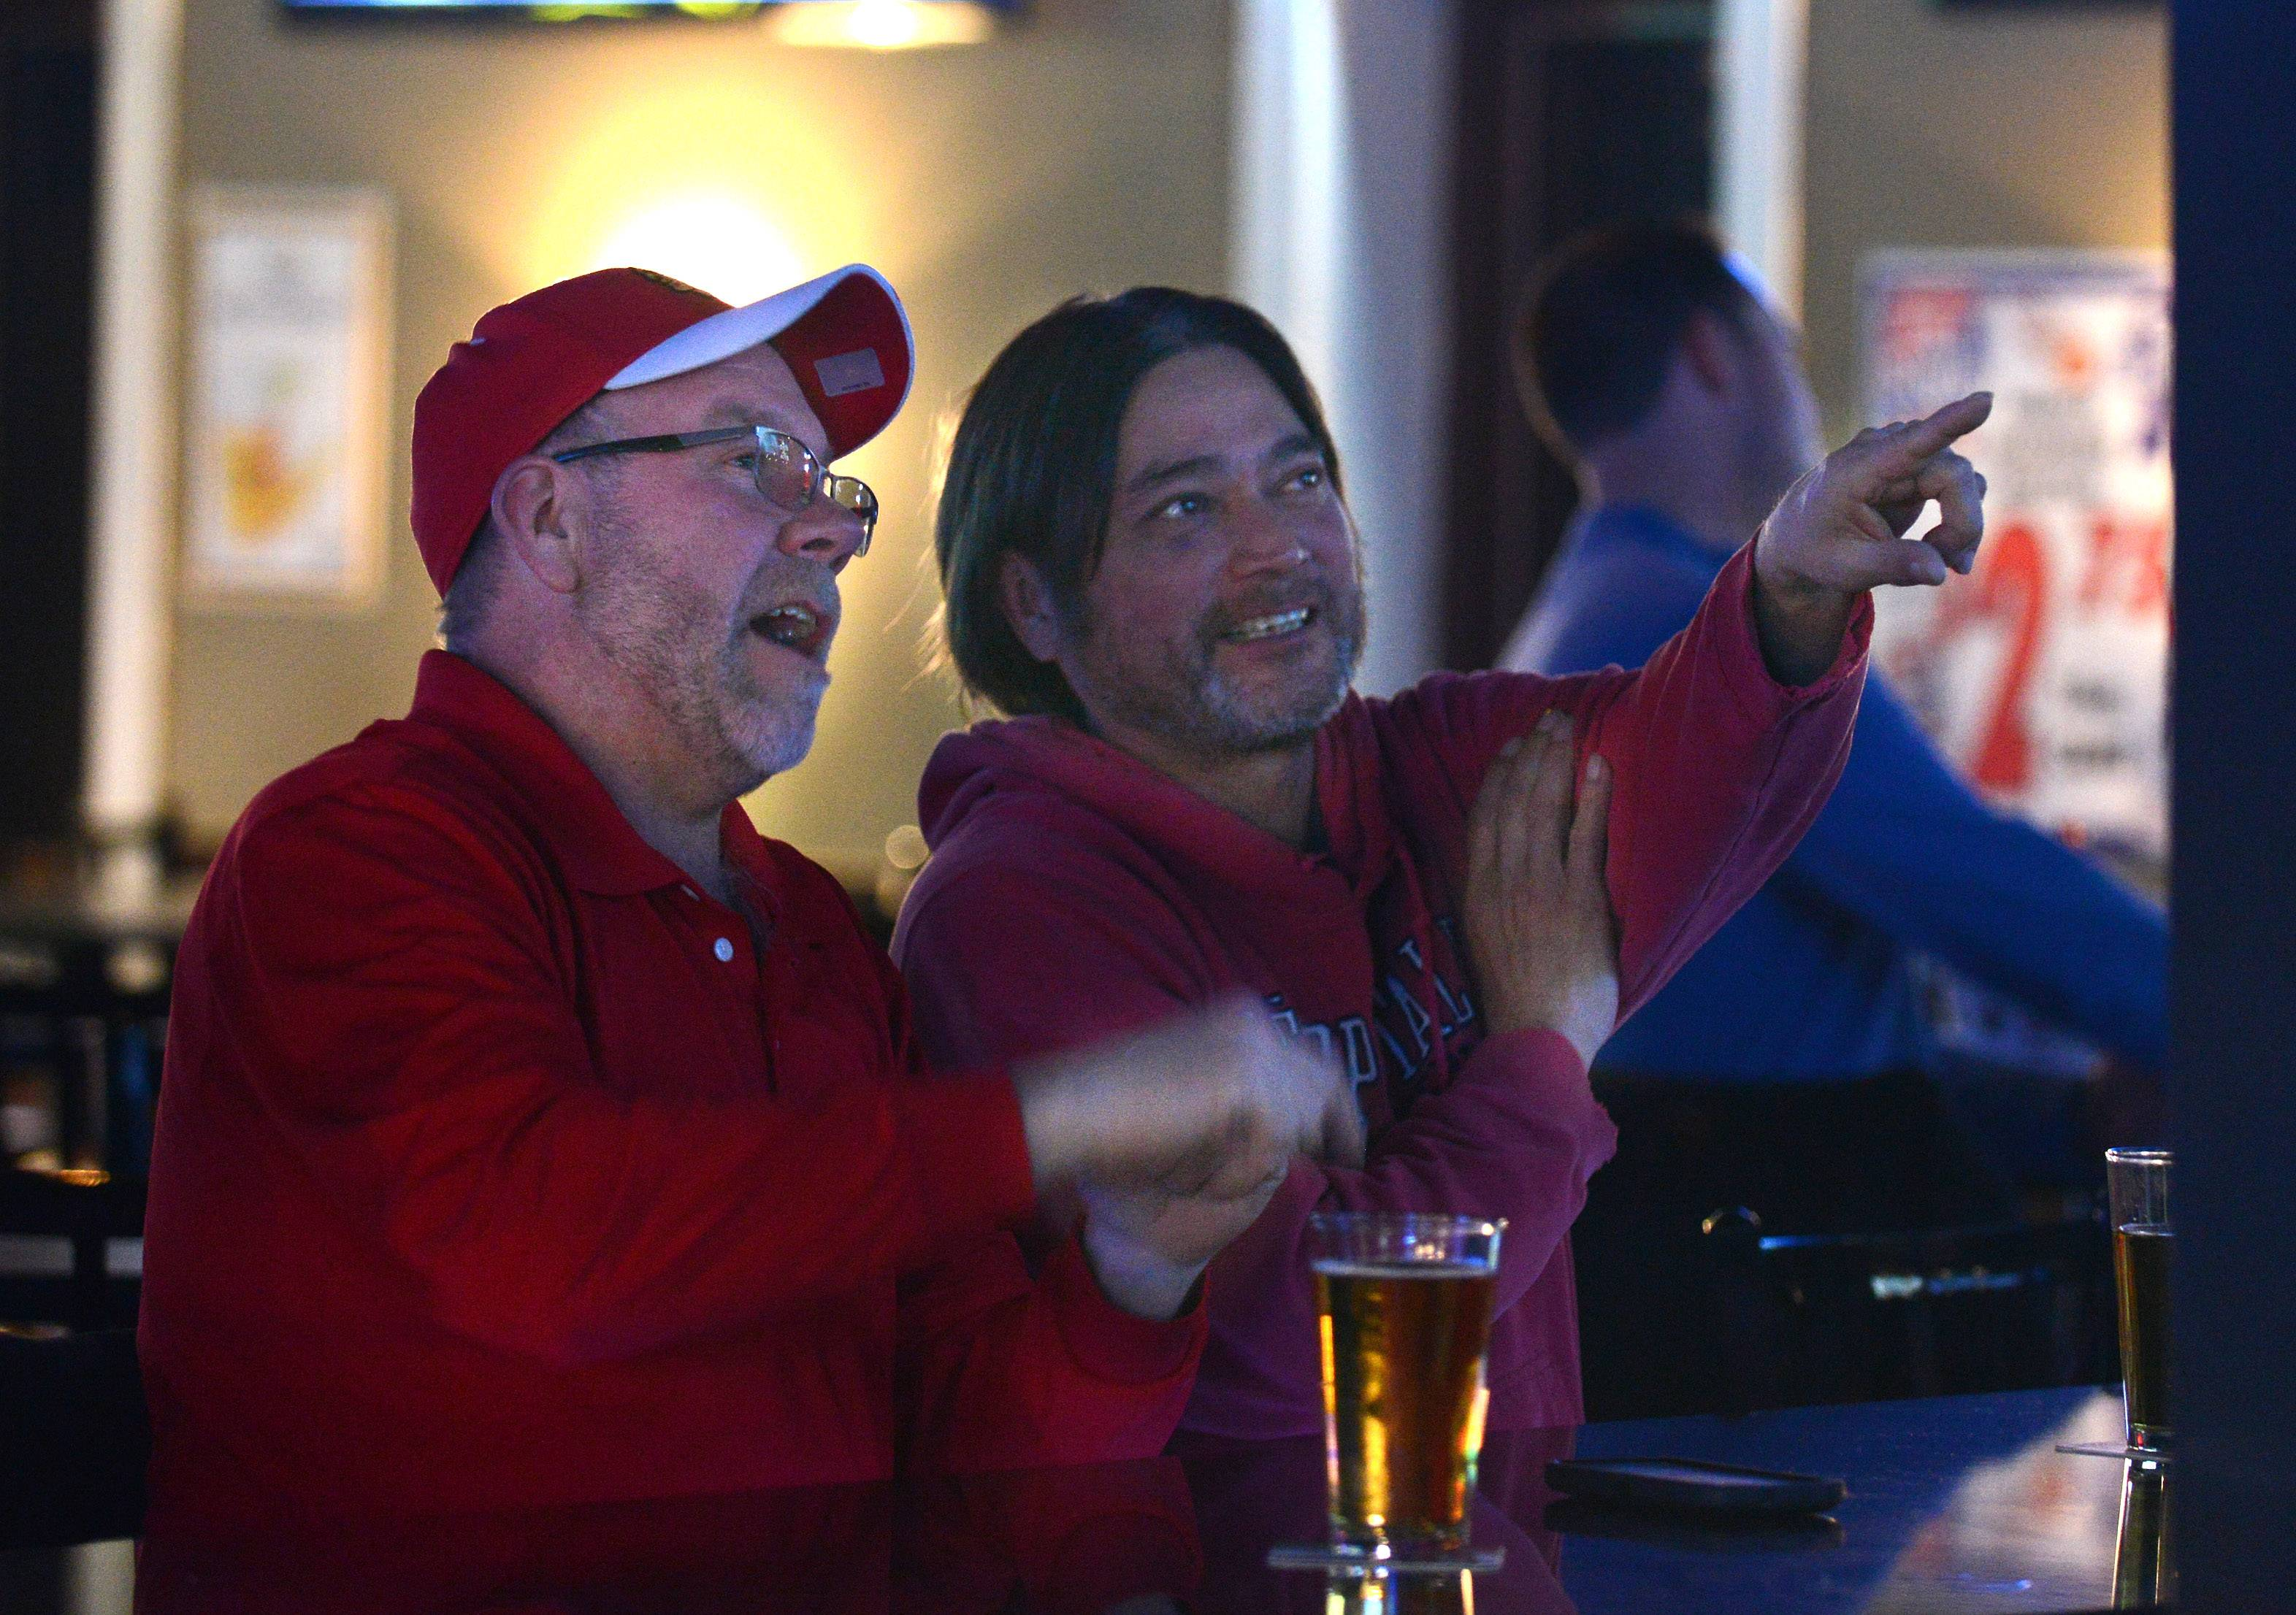 Scott Baker, left, and Rupert Siete, both of Elgin, watch the Blackhawks at D Hangout Bar and Grill in Elgin.